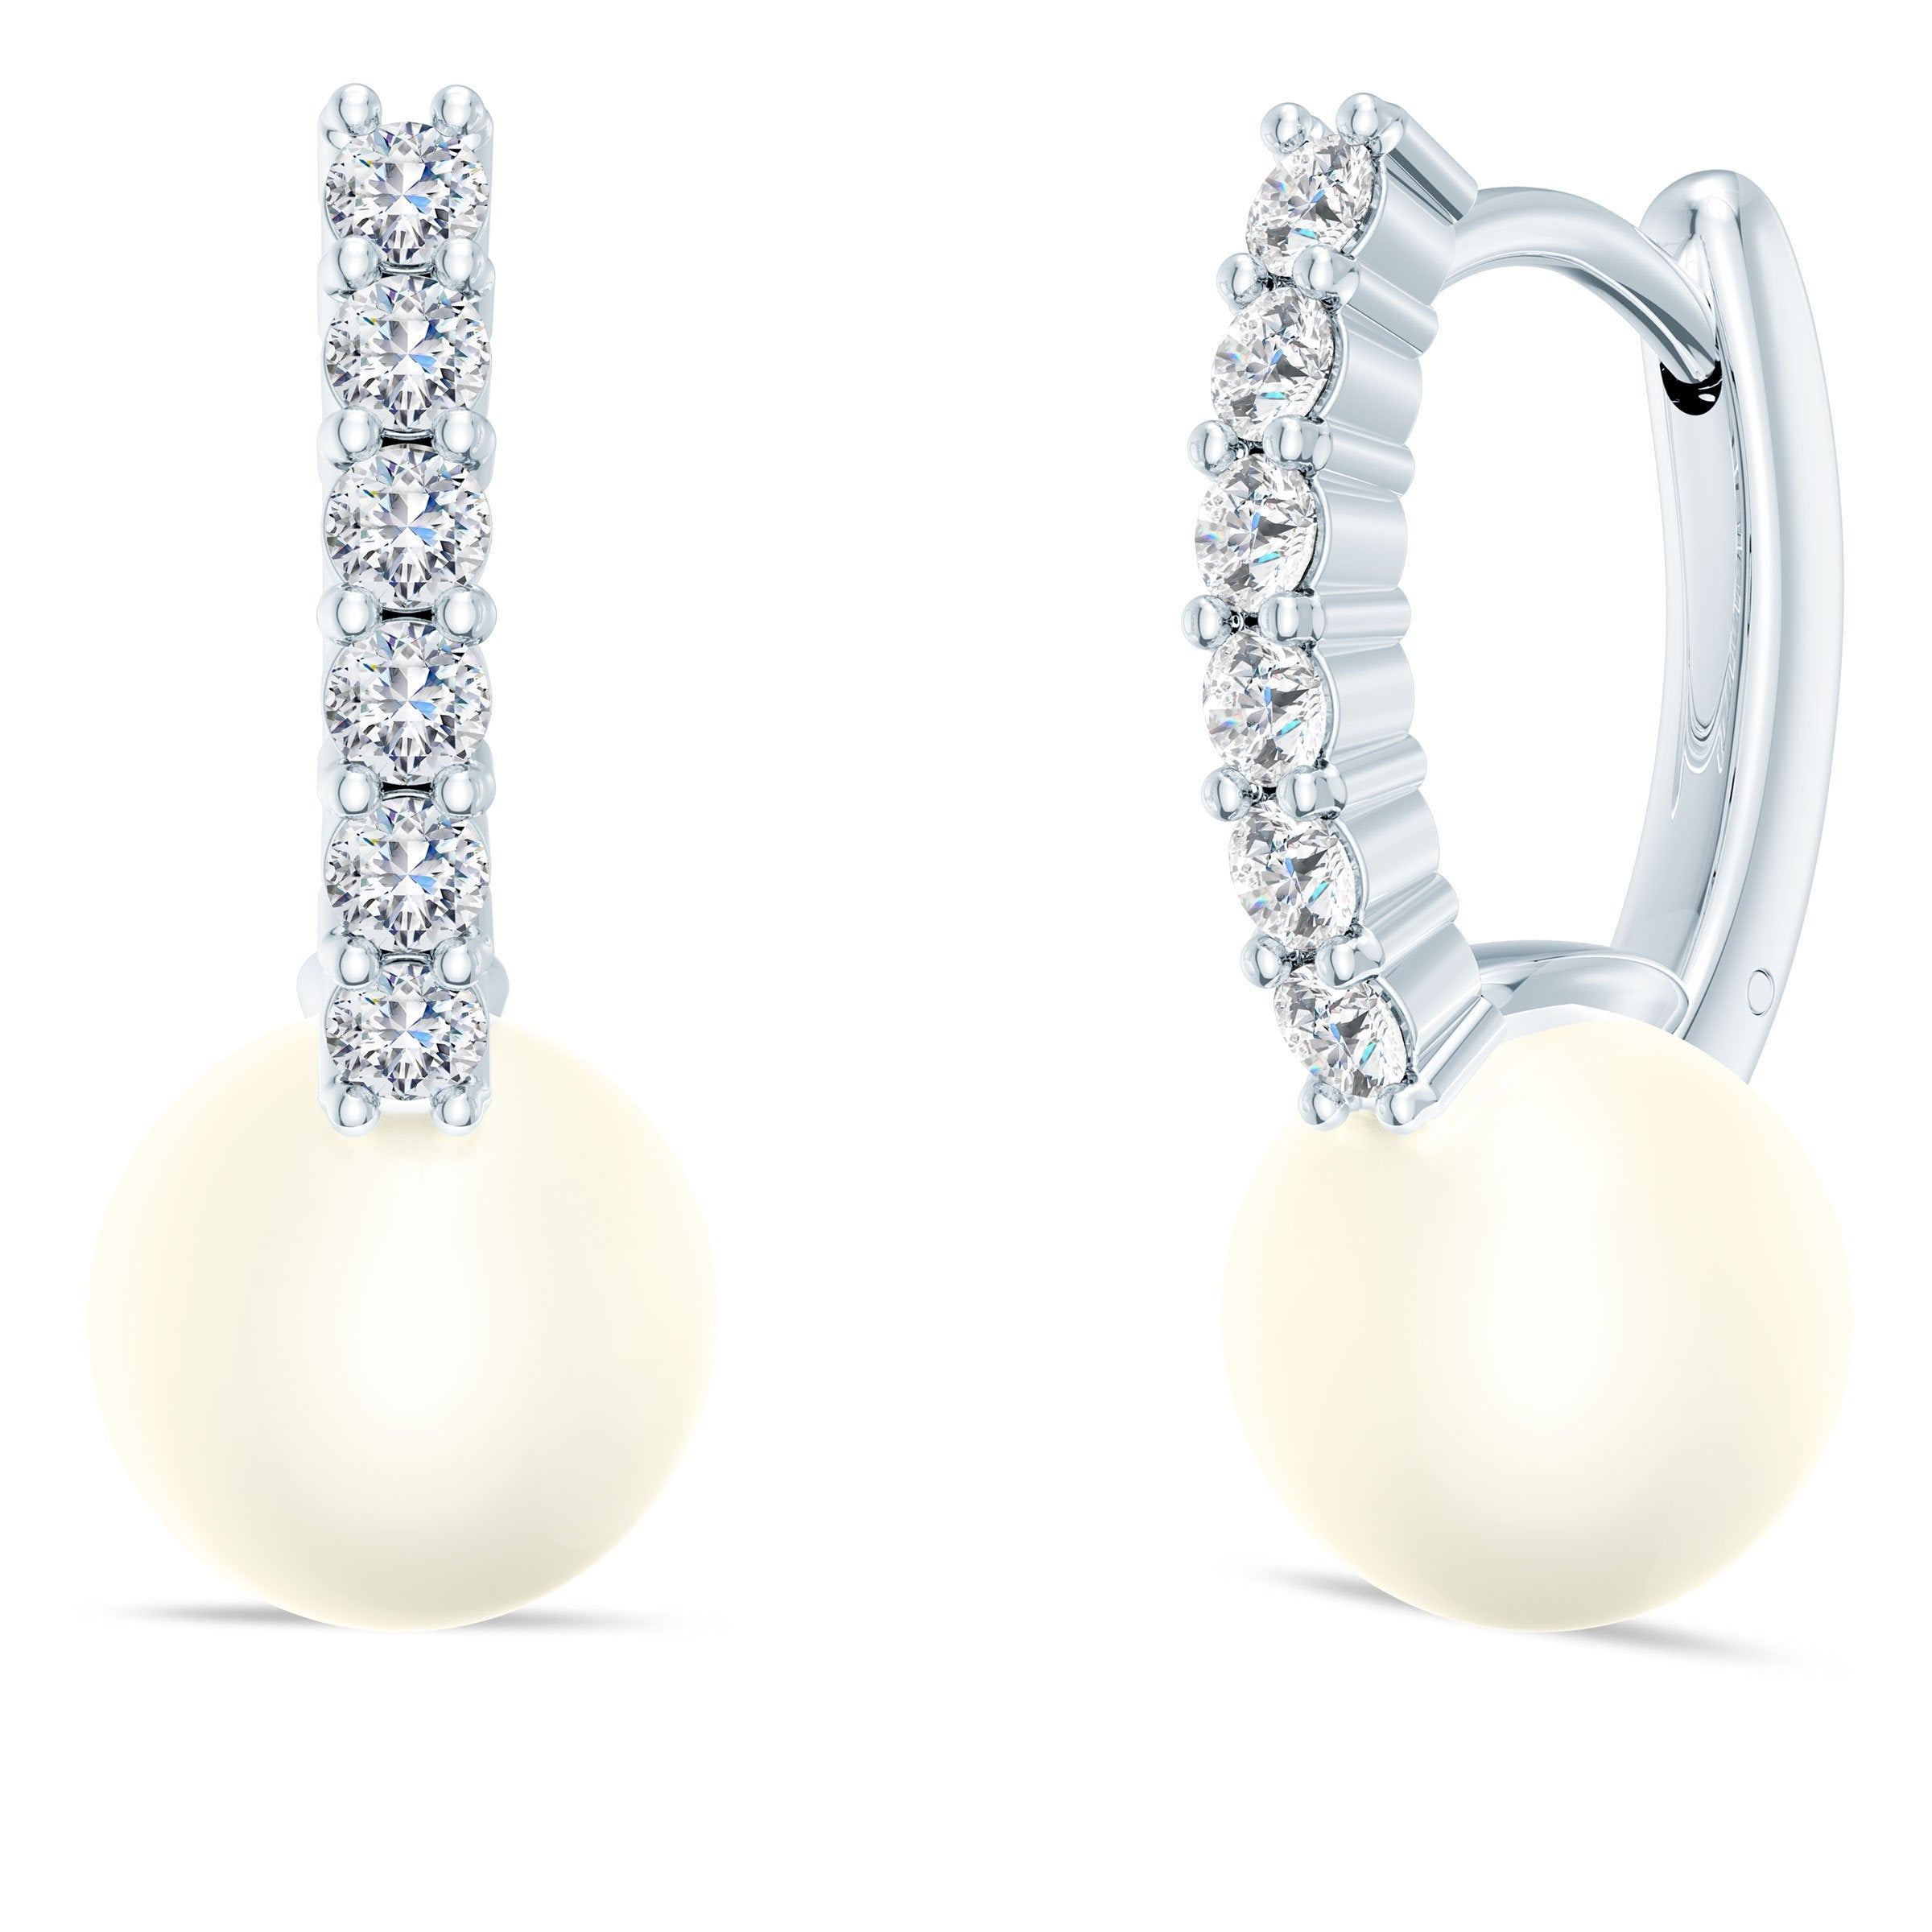 Akoya Pearl Diamond Earrings in 14K Gold